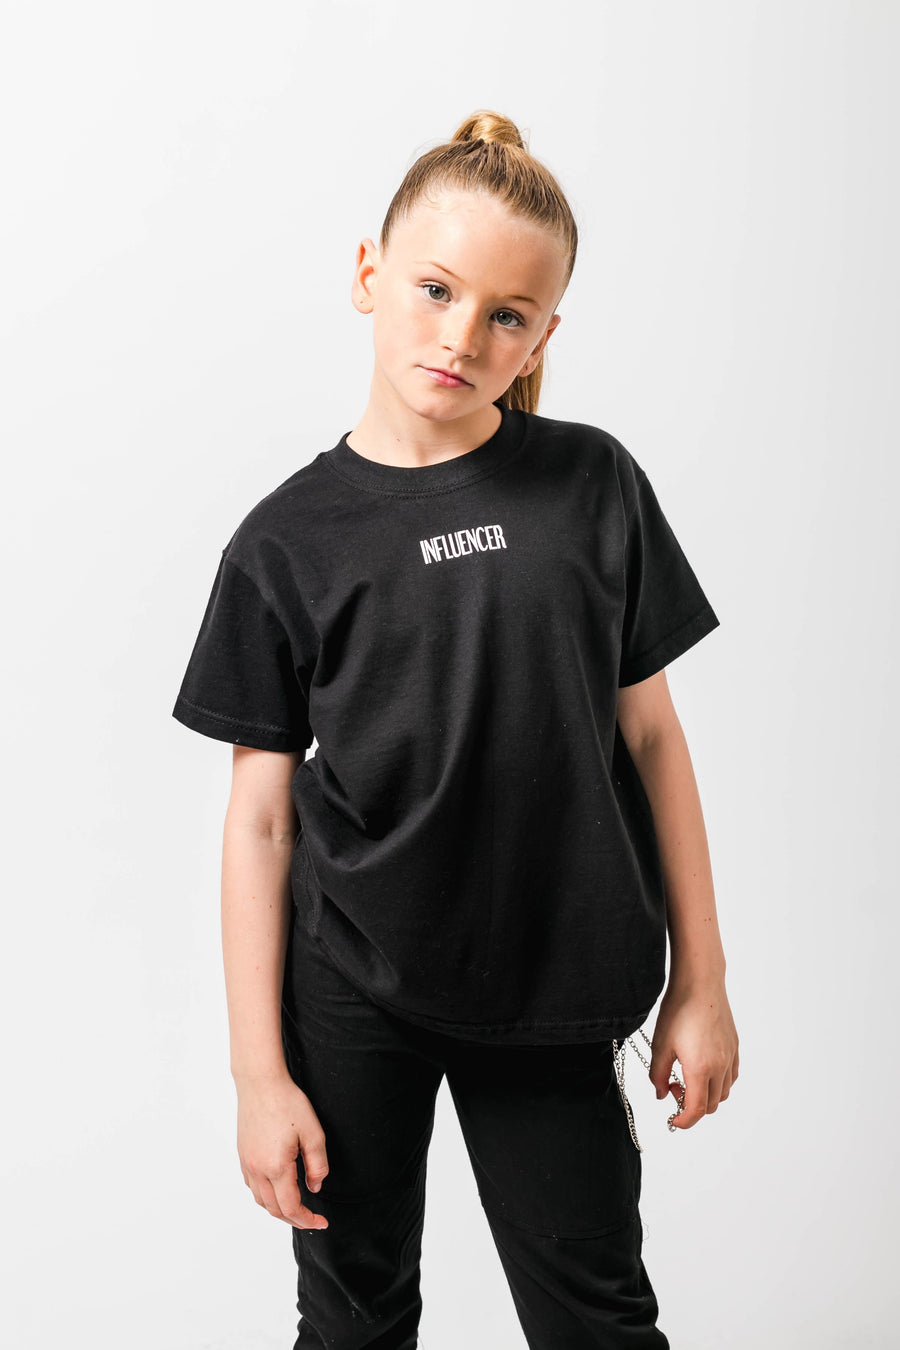 Influencer Loose fit Tshirt Black Little Attitude